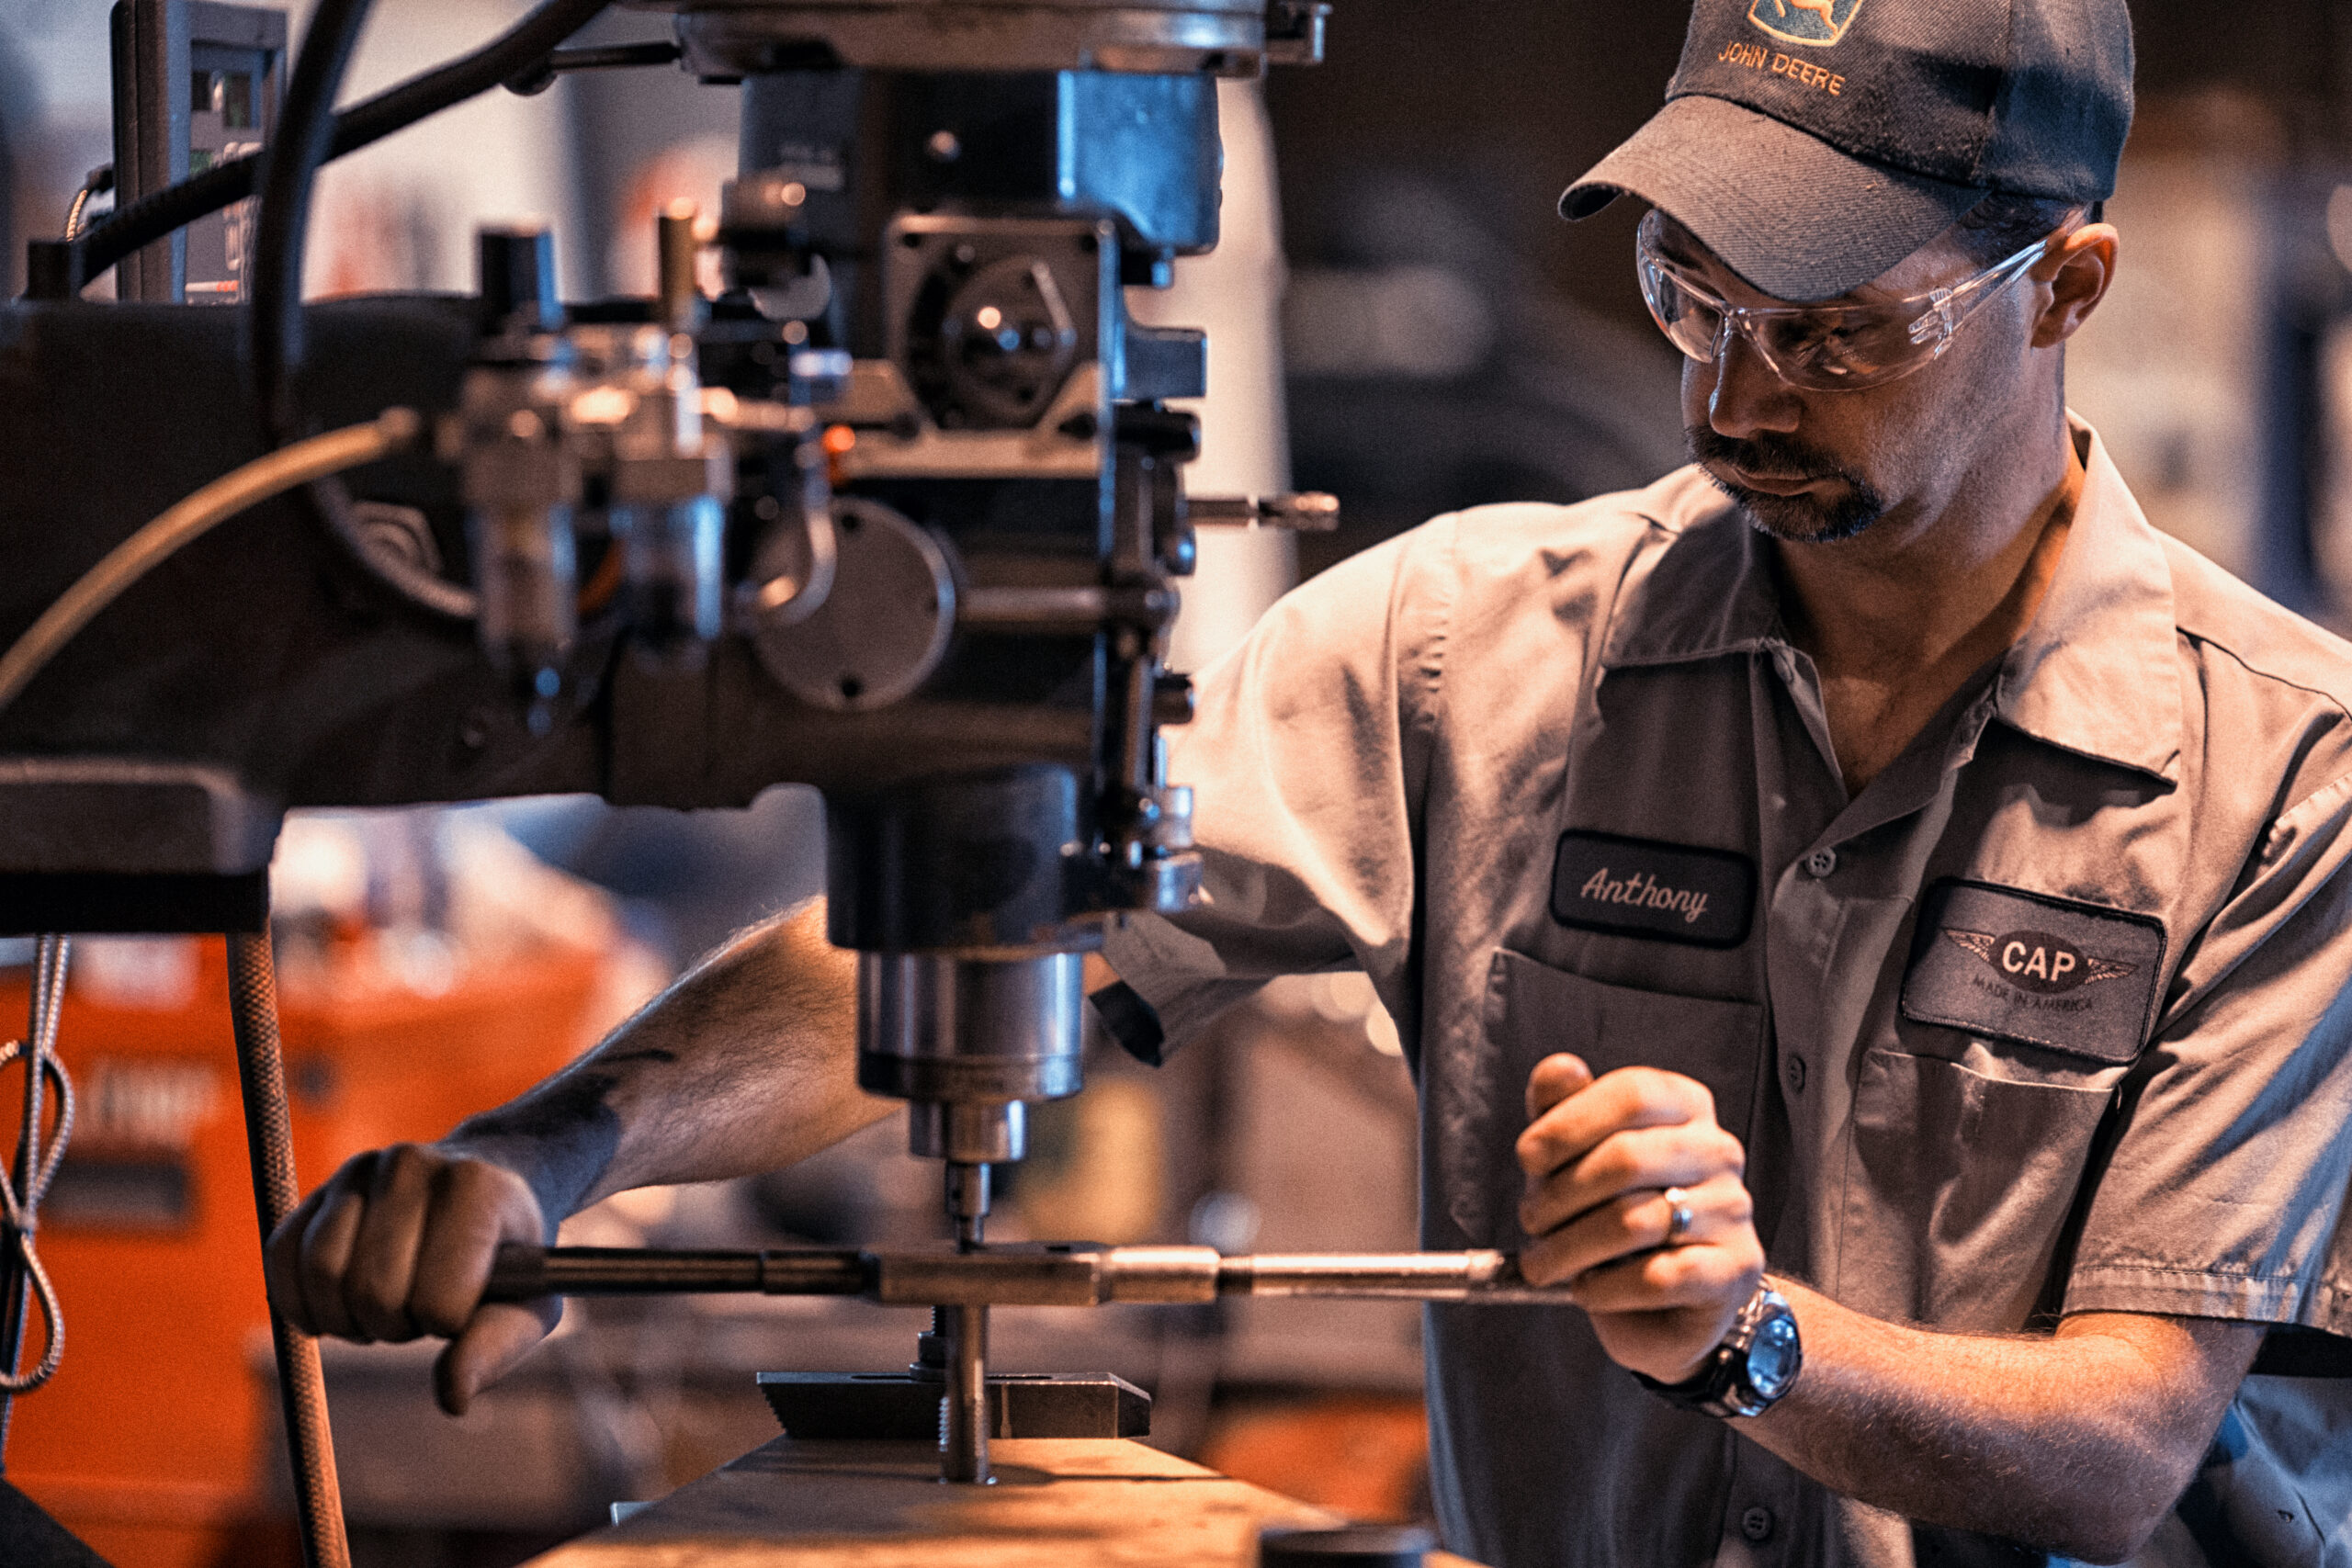 Man works on machinery in manufacturing setting